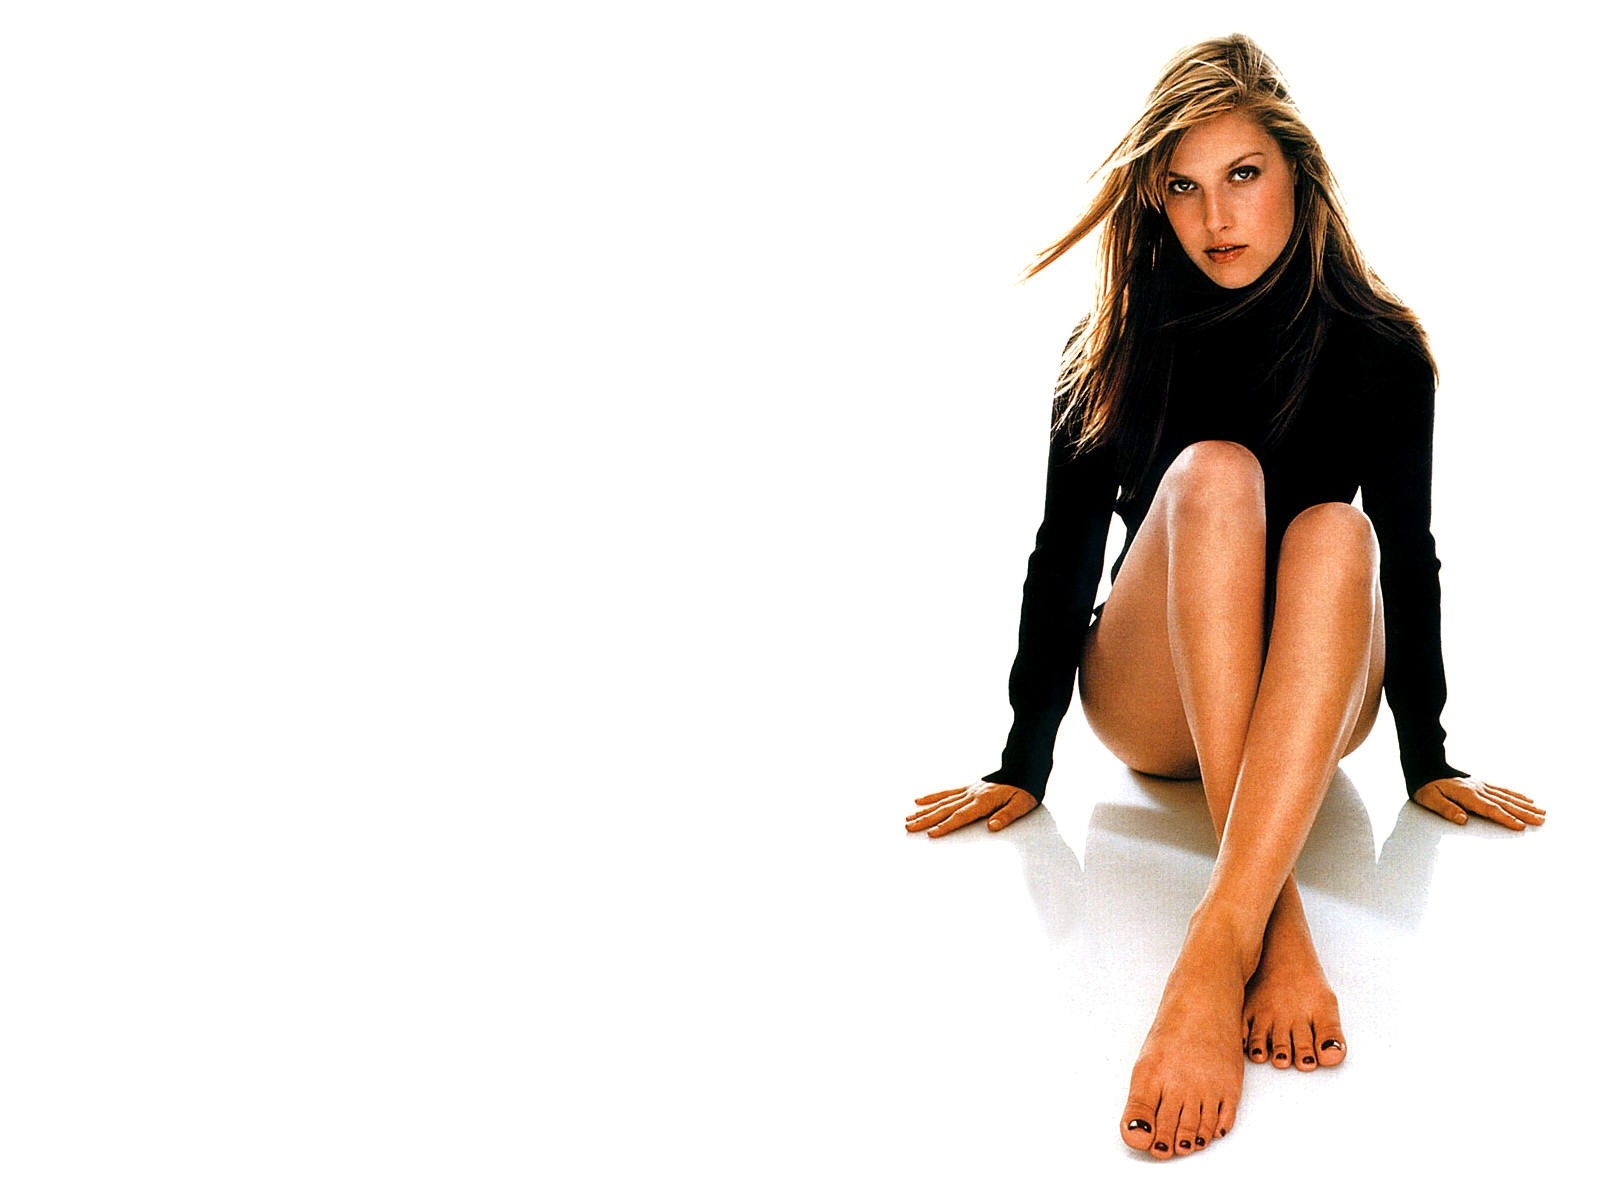 Wallpaper di Ali Larter